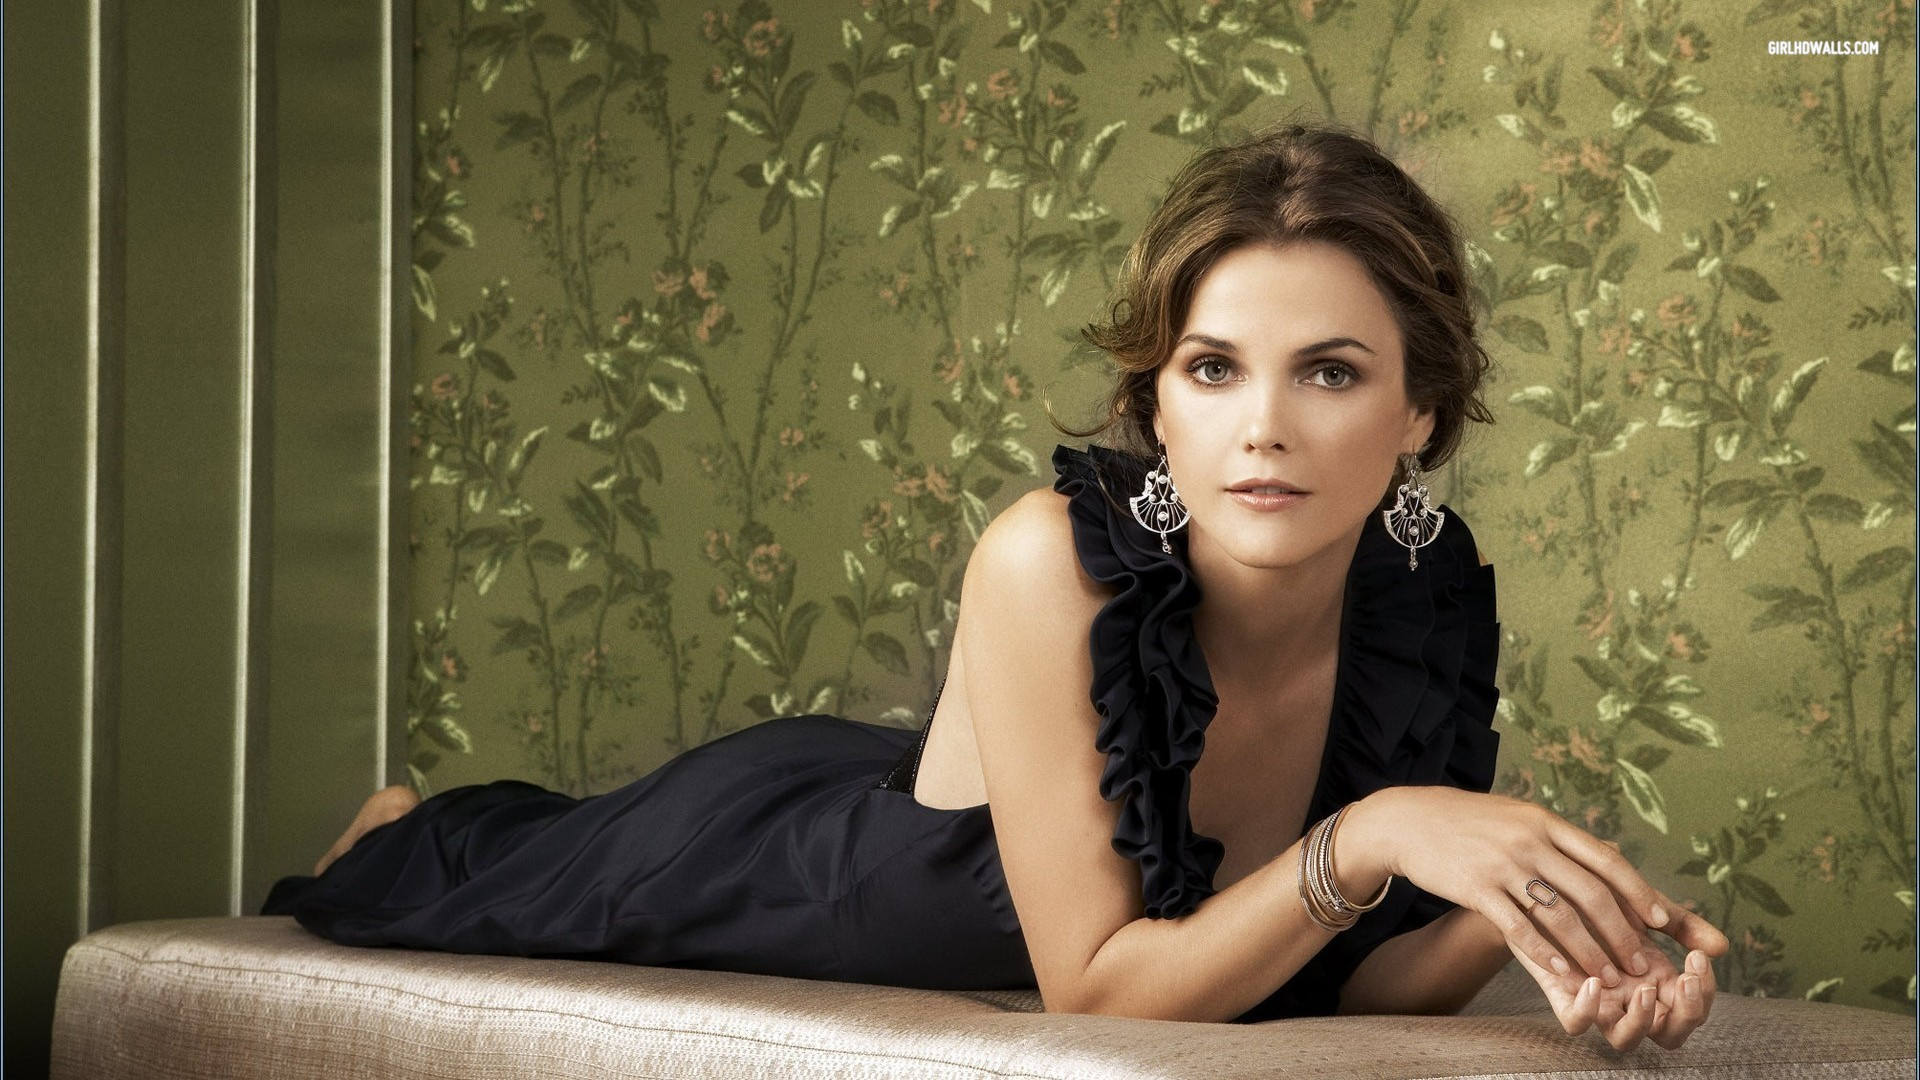 Keri Russell Wallpapers High Resolution And Quality Download